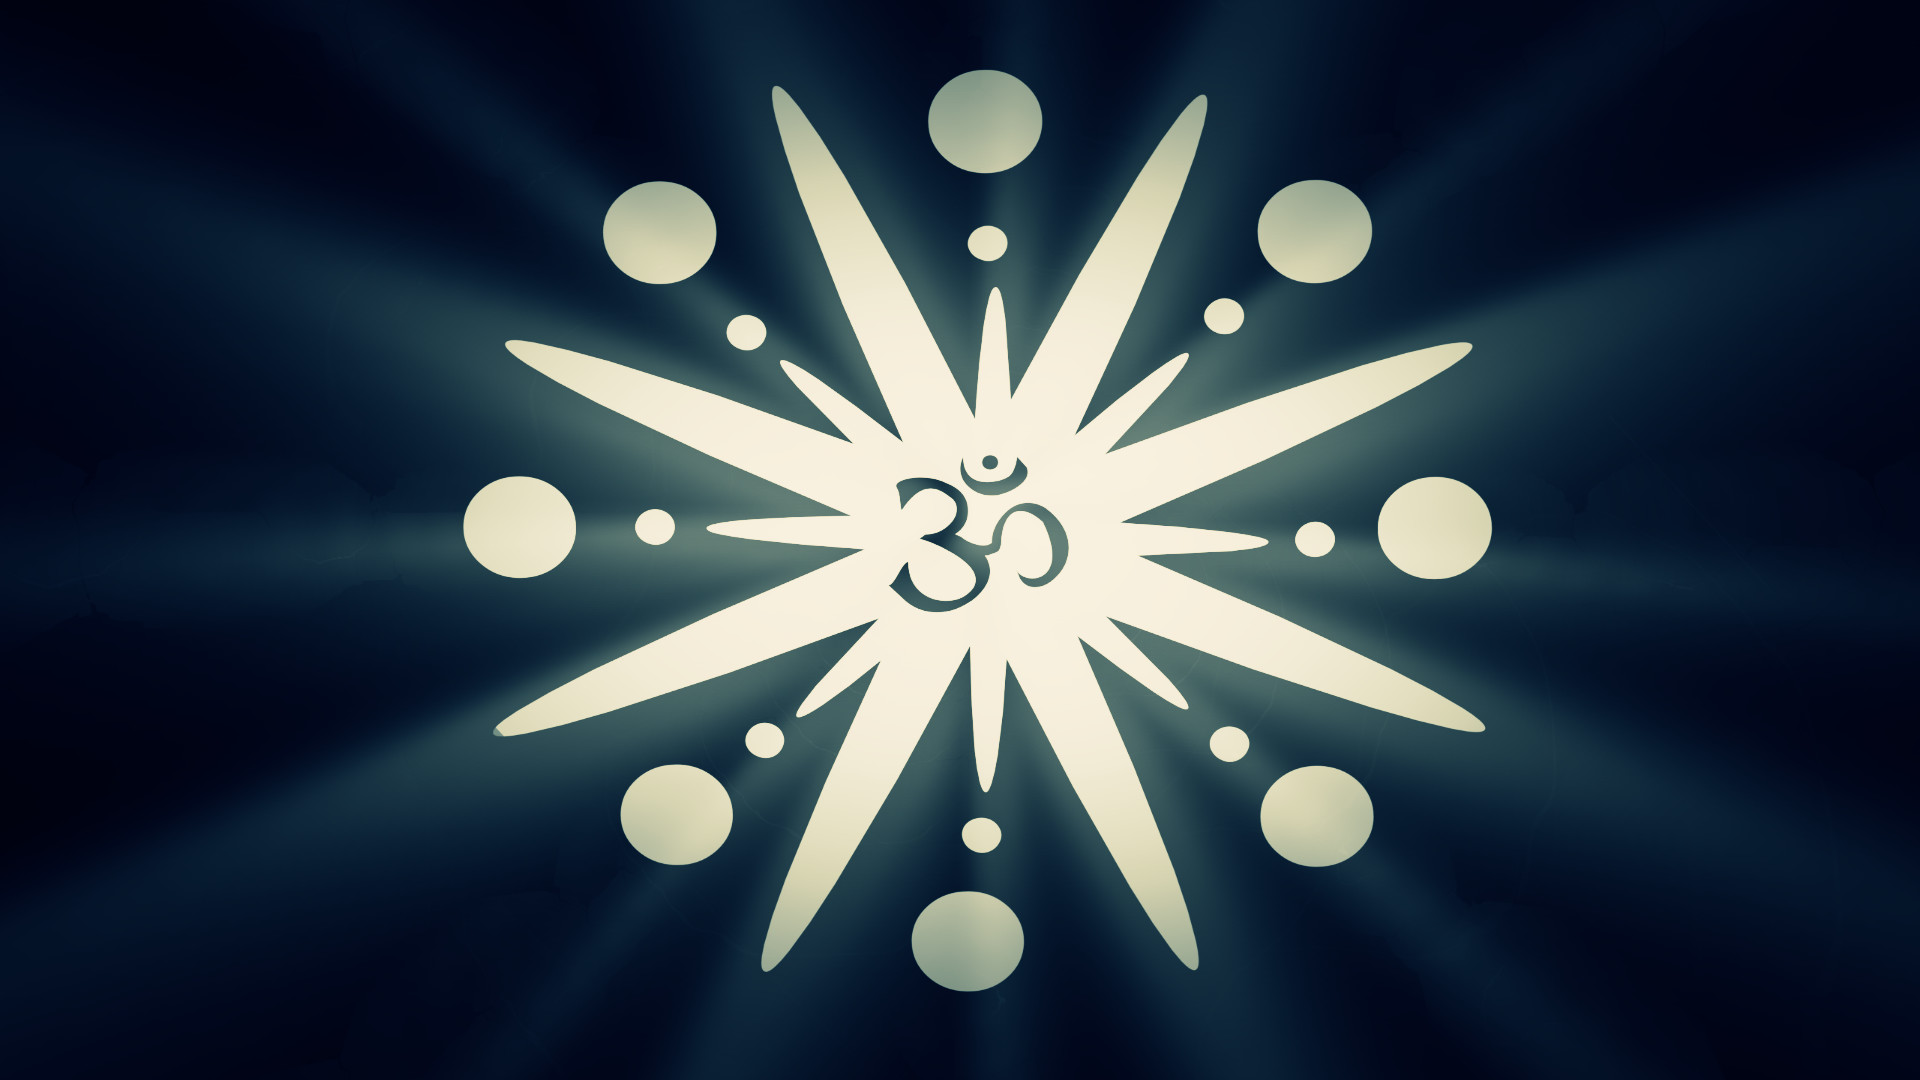 1920x1080 ... Om (Aum/Ohm) by Extra-terrien